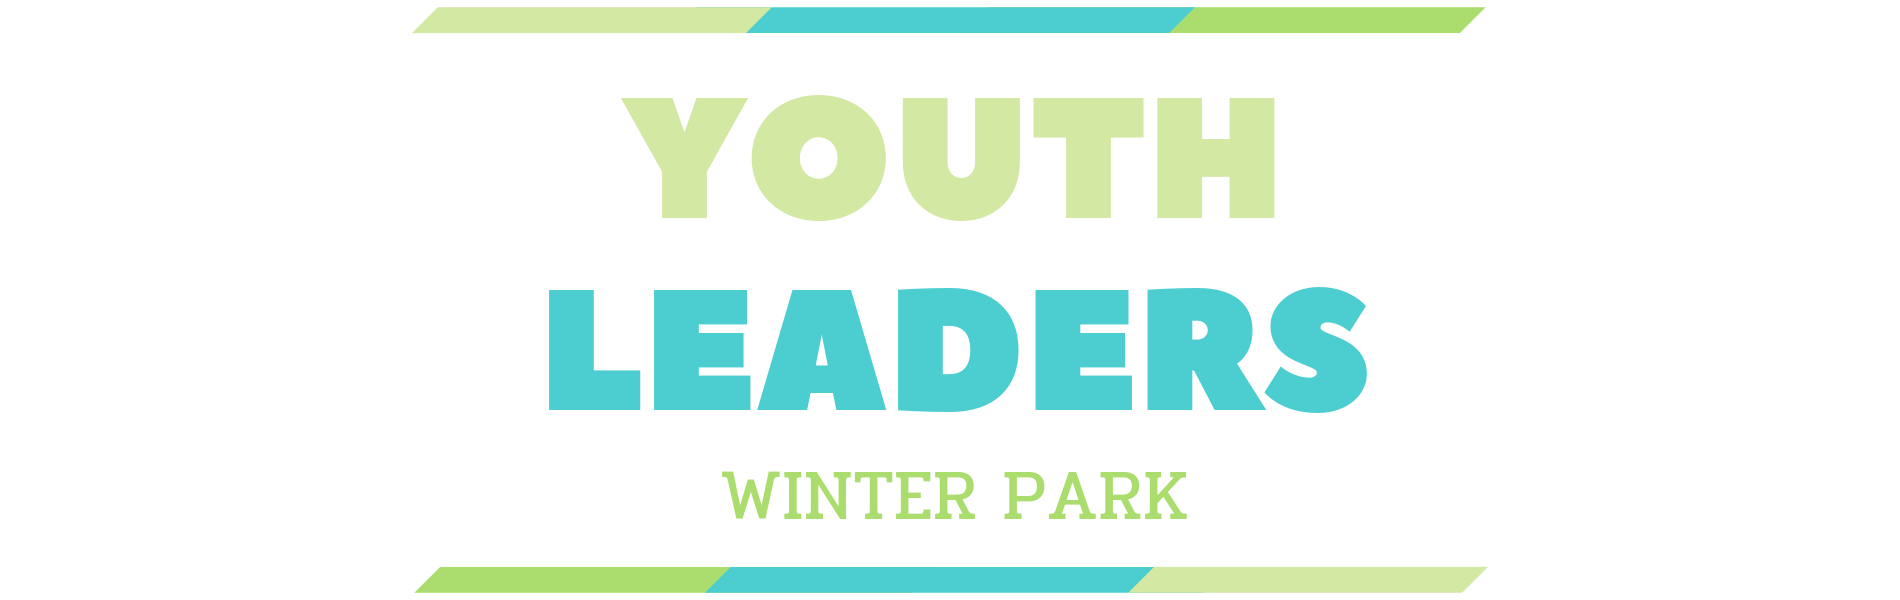 Copy-of-Youth-Leaders-Logo-2250-X-1250.png